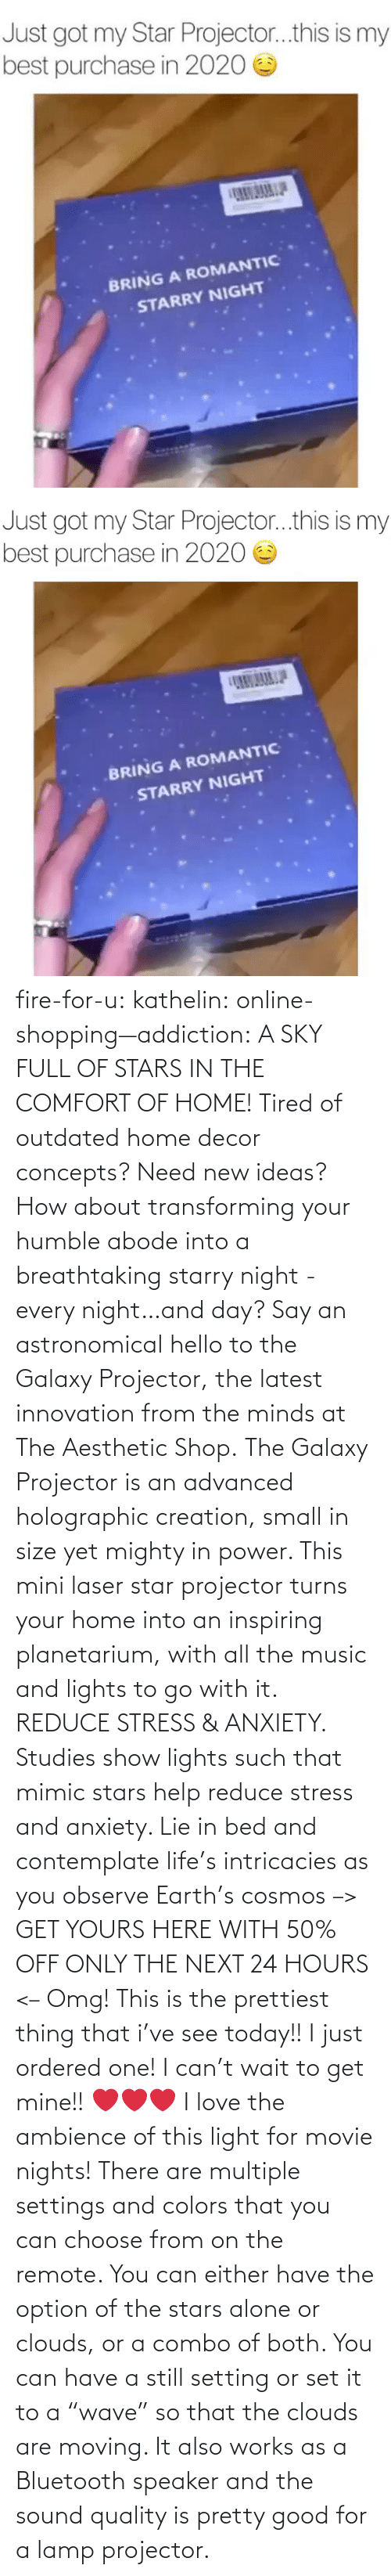 "Both: fire-for-u:  kathelin: online-shopping—addiction:  A SKY FULL OF STARS IN THE COMFORT OF HOME! Tired of outdated home decor concepts? Need new ideas? How about transforming your humble abode into a breathtaking starry night - every night…and day? Say an astronomical hello to the Galaxy Projector, the latest innovation from the minds at The Aesthetic Shop. The Galaxy Projector is an advanced holographic creation, small in size yet mighty in power. This mini laser star projector turns your home into an inspiring planetarium, with all the music and lights to go with it. REDUCE STRESS & ANXIETY. Studies show lights such that mimic stars help reduce stress and anxiety. Lie in bed and contemplate life's intricacies as you observe Earth's cosmos  –> GET YOURS HERE WITH 50% OFF ONLY THE NEXT 24 HOURS <–   Omg! This is the prettiest thing that i've see today!! I just ordered one! I can't wait to get mine!! ❤️️❤️️❤️️  I love the ambience of this light for movie nights! There are multiple settings and colors that you can choose from on the remote. You can either have the option of the stars alone or clouds, or a combo of both. You can have a still setting or set it to a ""wave"" so that the clouds are moving. It also works as a Bluetooth speaker and the sound quality is pretty good for a lamp projector."